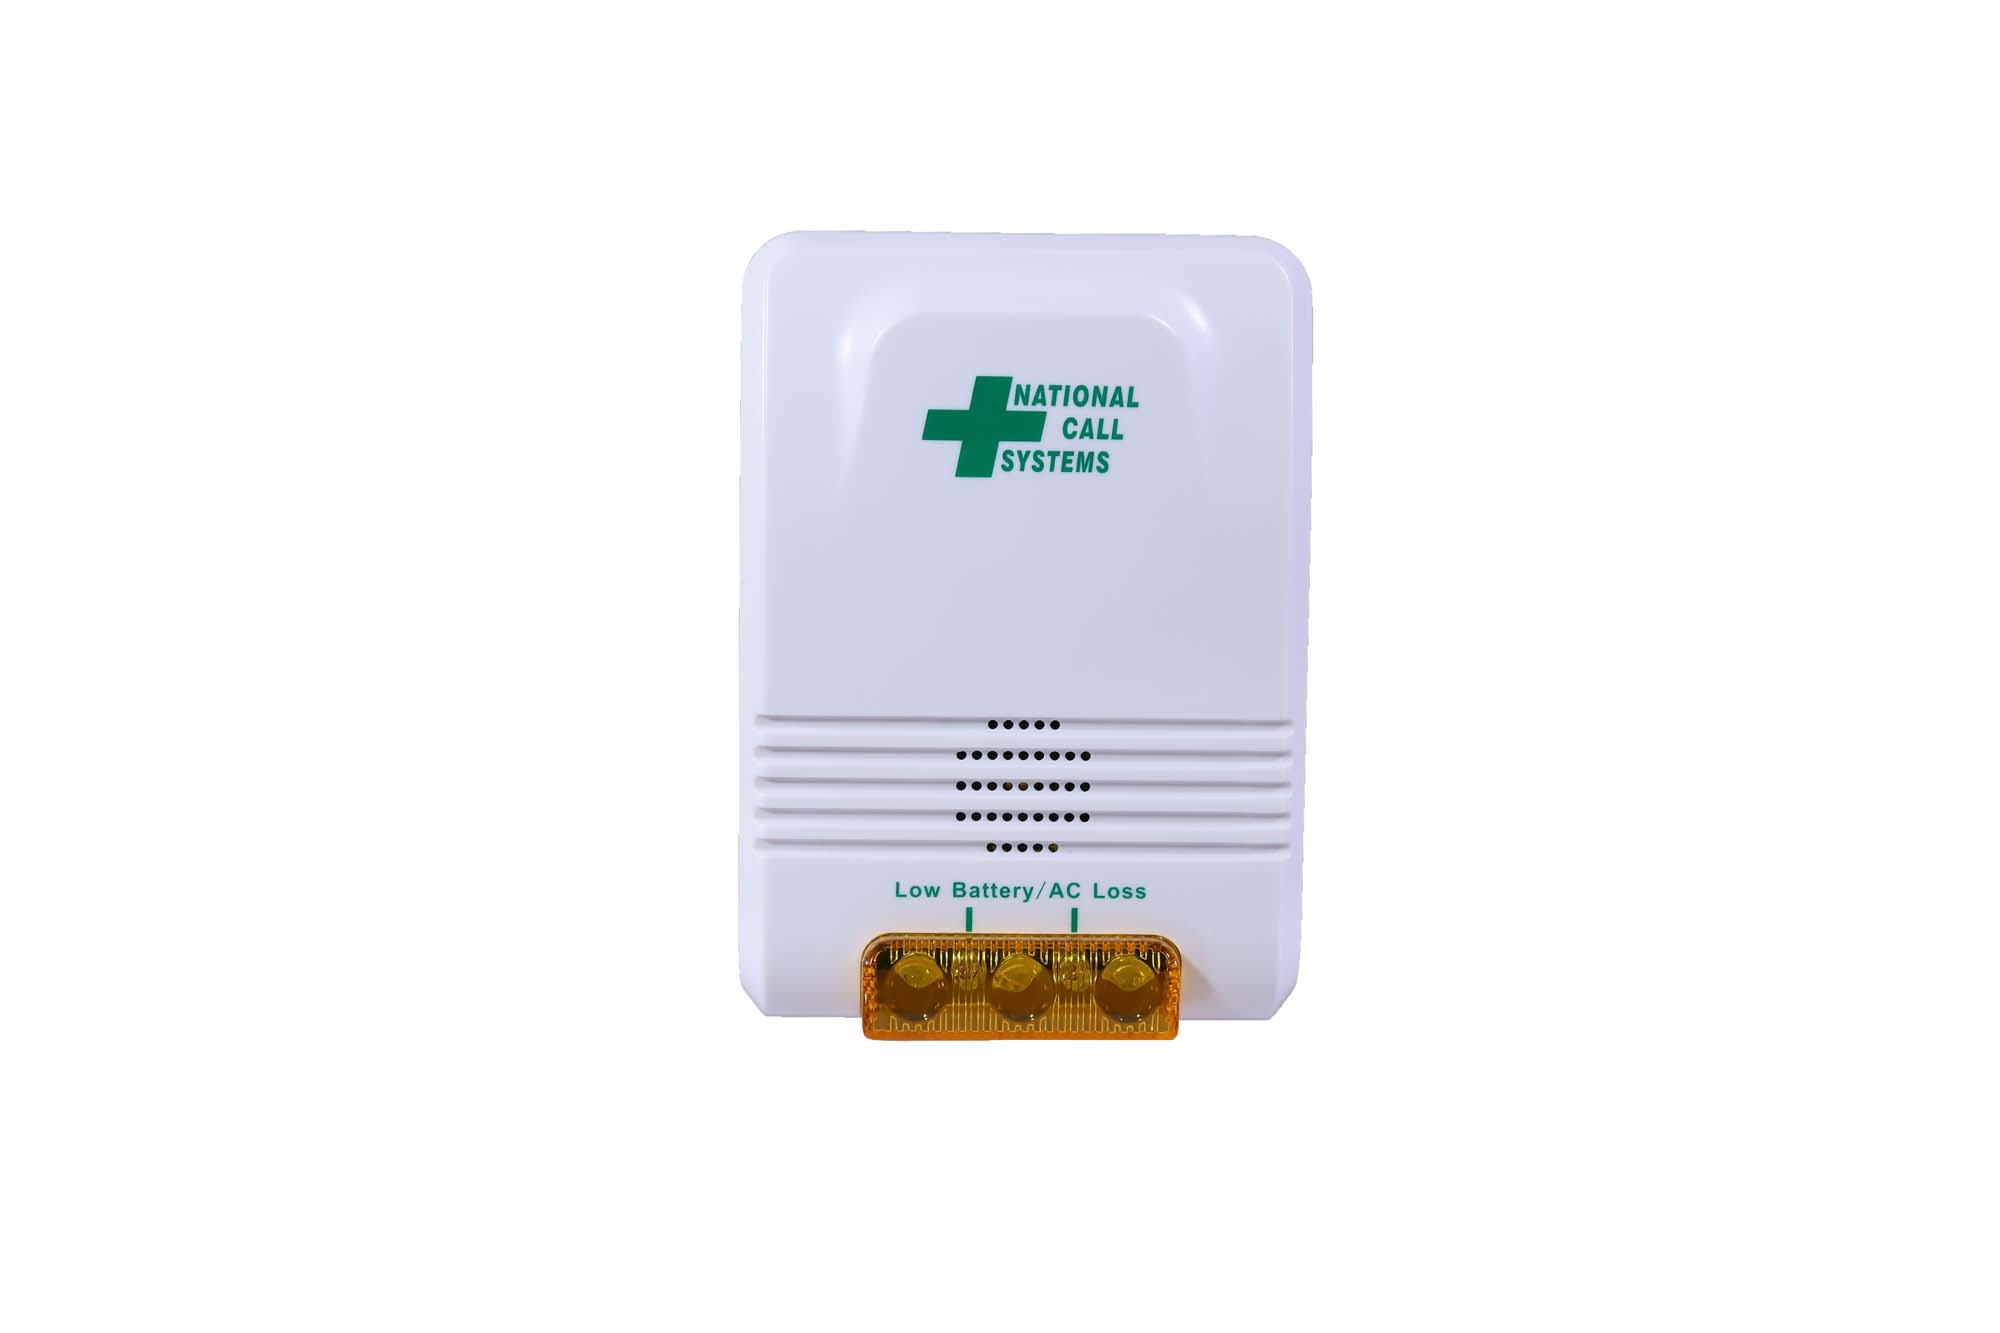 national-call-systems-2007-emergency-call-alarm-light-ncs-ecl-front.jpg